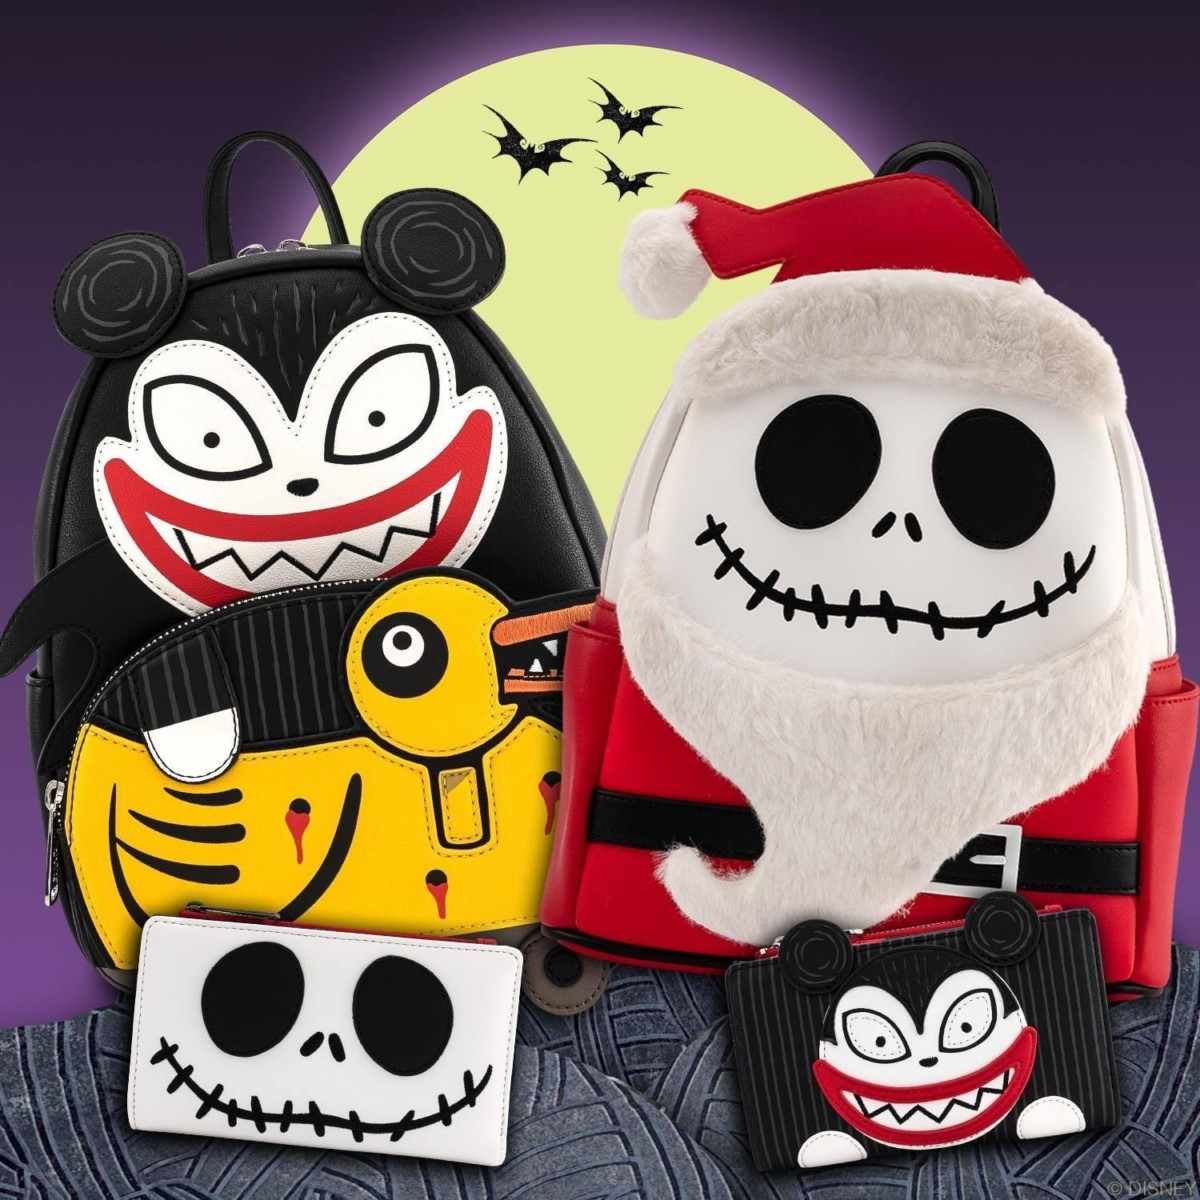 New Nightmare Before Christmas Bags from Loungefly 5